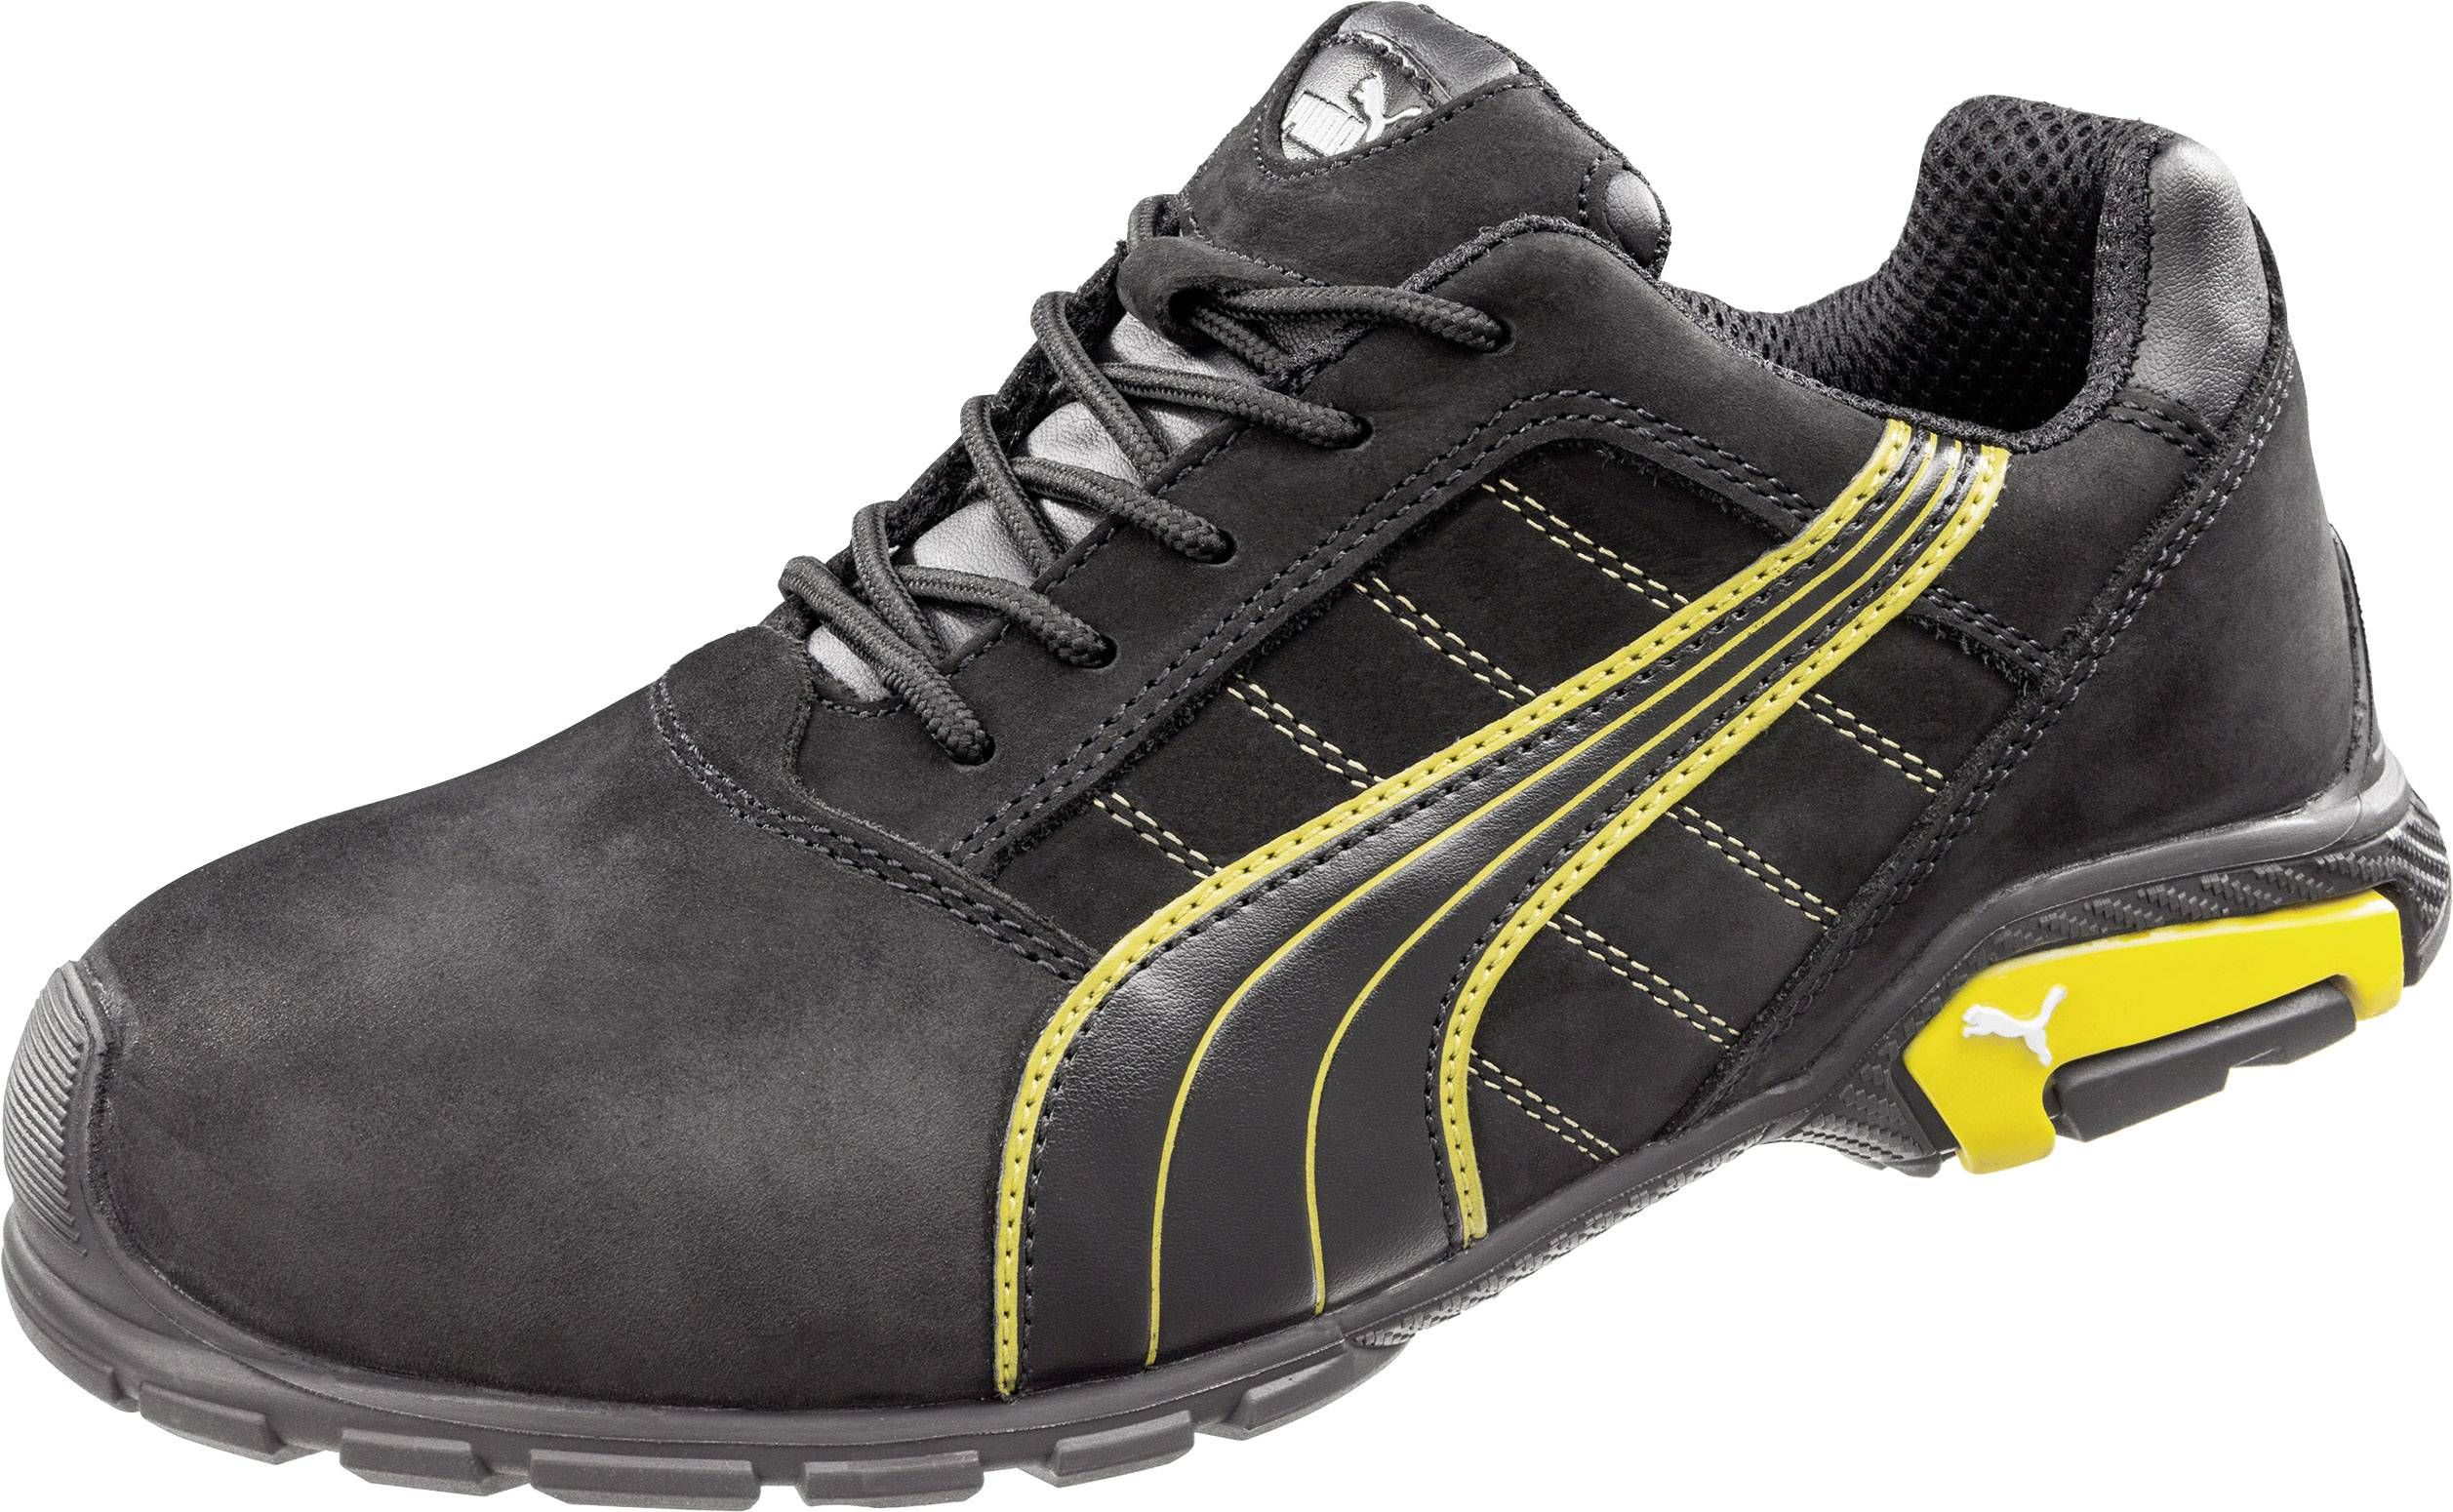 cf64c0923d Safety shoes S3 Size: 42 Black, Yellow PUMA Safety Amsterdam Low 642710 1  pair